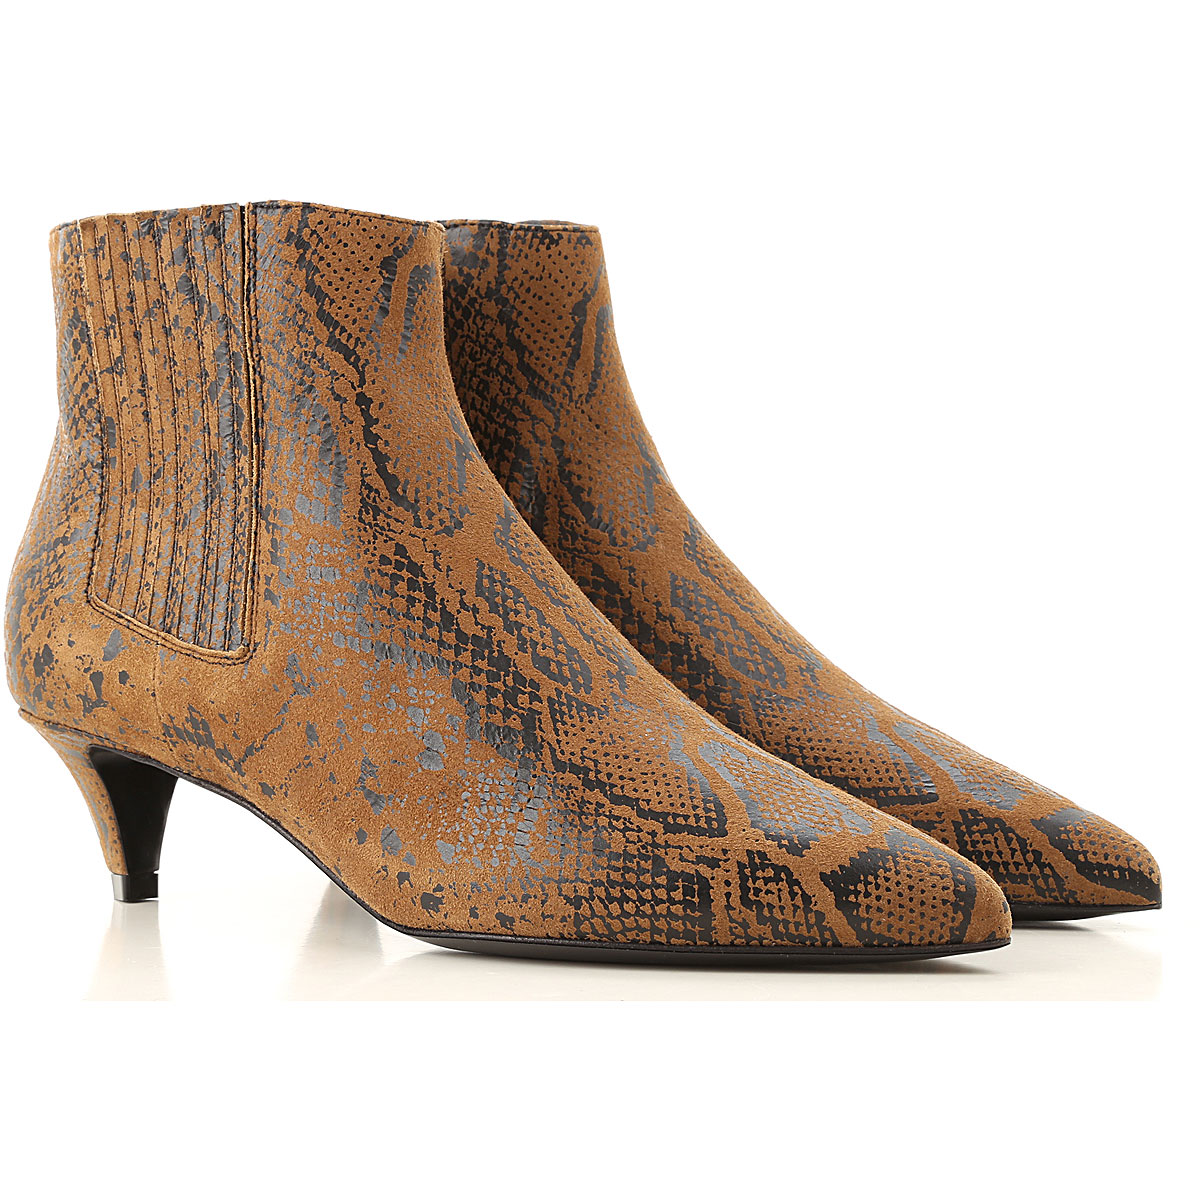 Celine Boots for Women, Booties On Sale, Caramel, Leather, 2019, 6 6.5 7 8